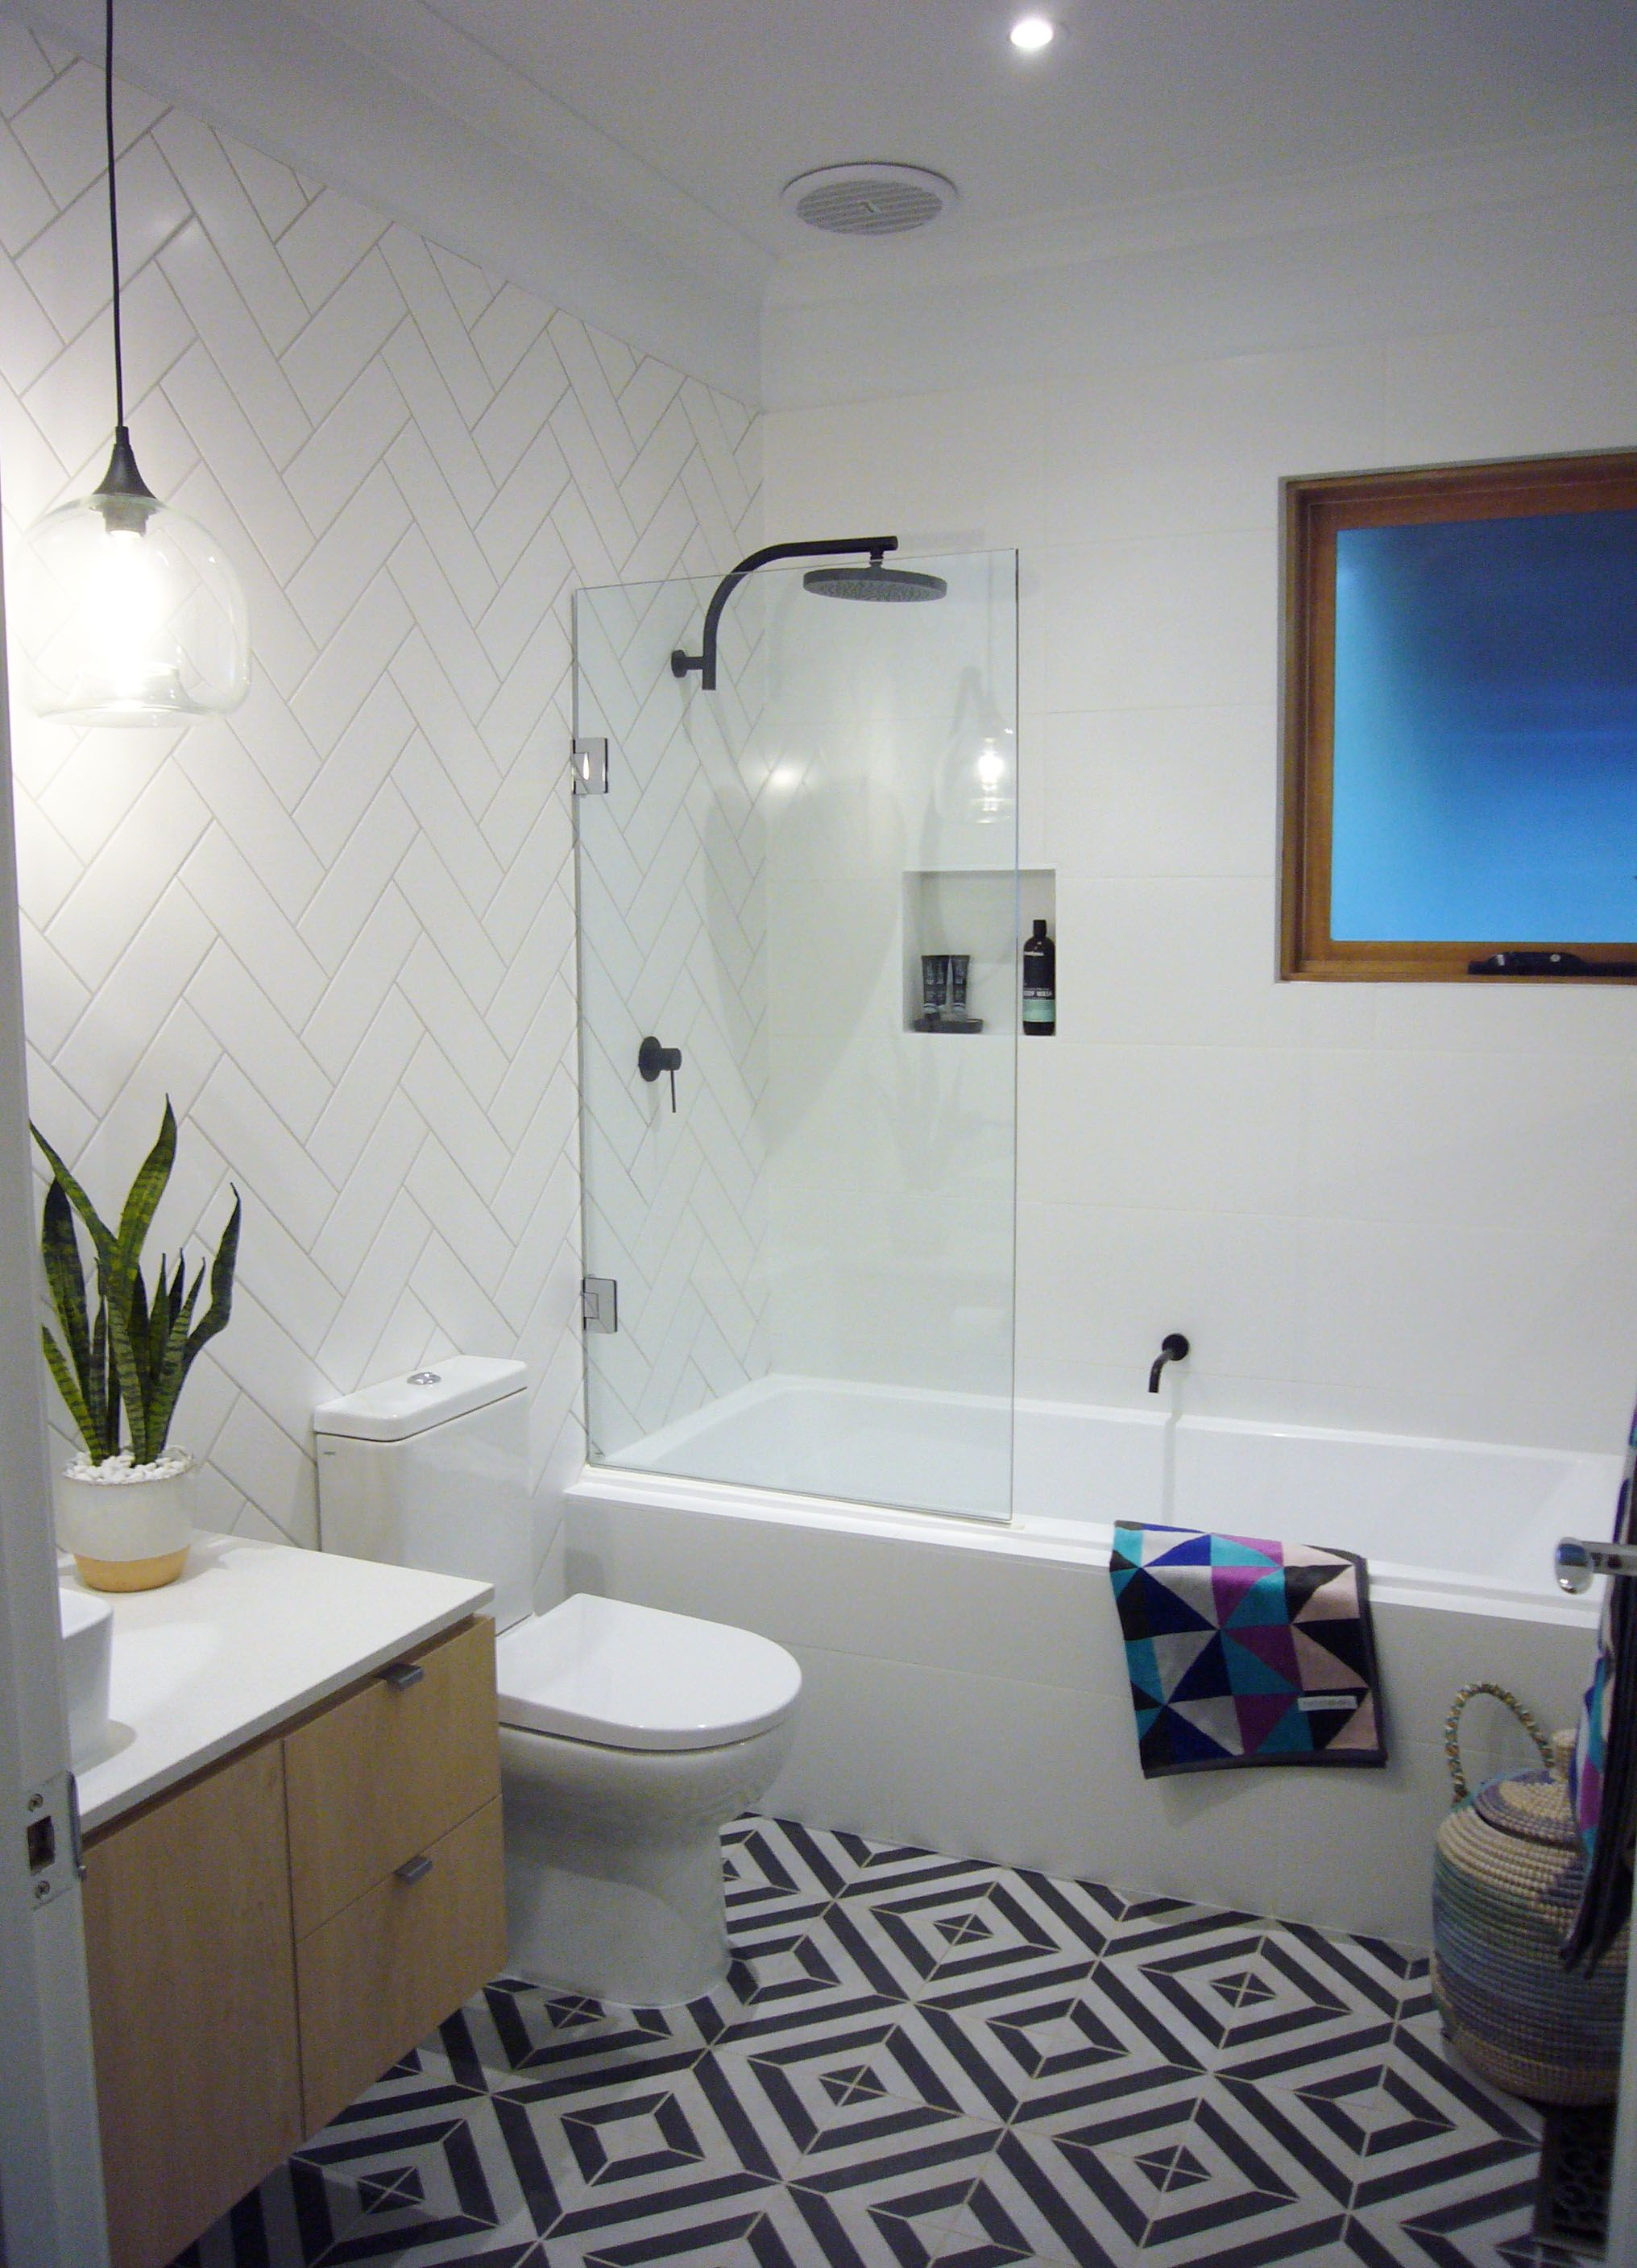 A lovely bathroom renovation by Review Interiors featuring our